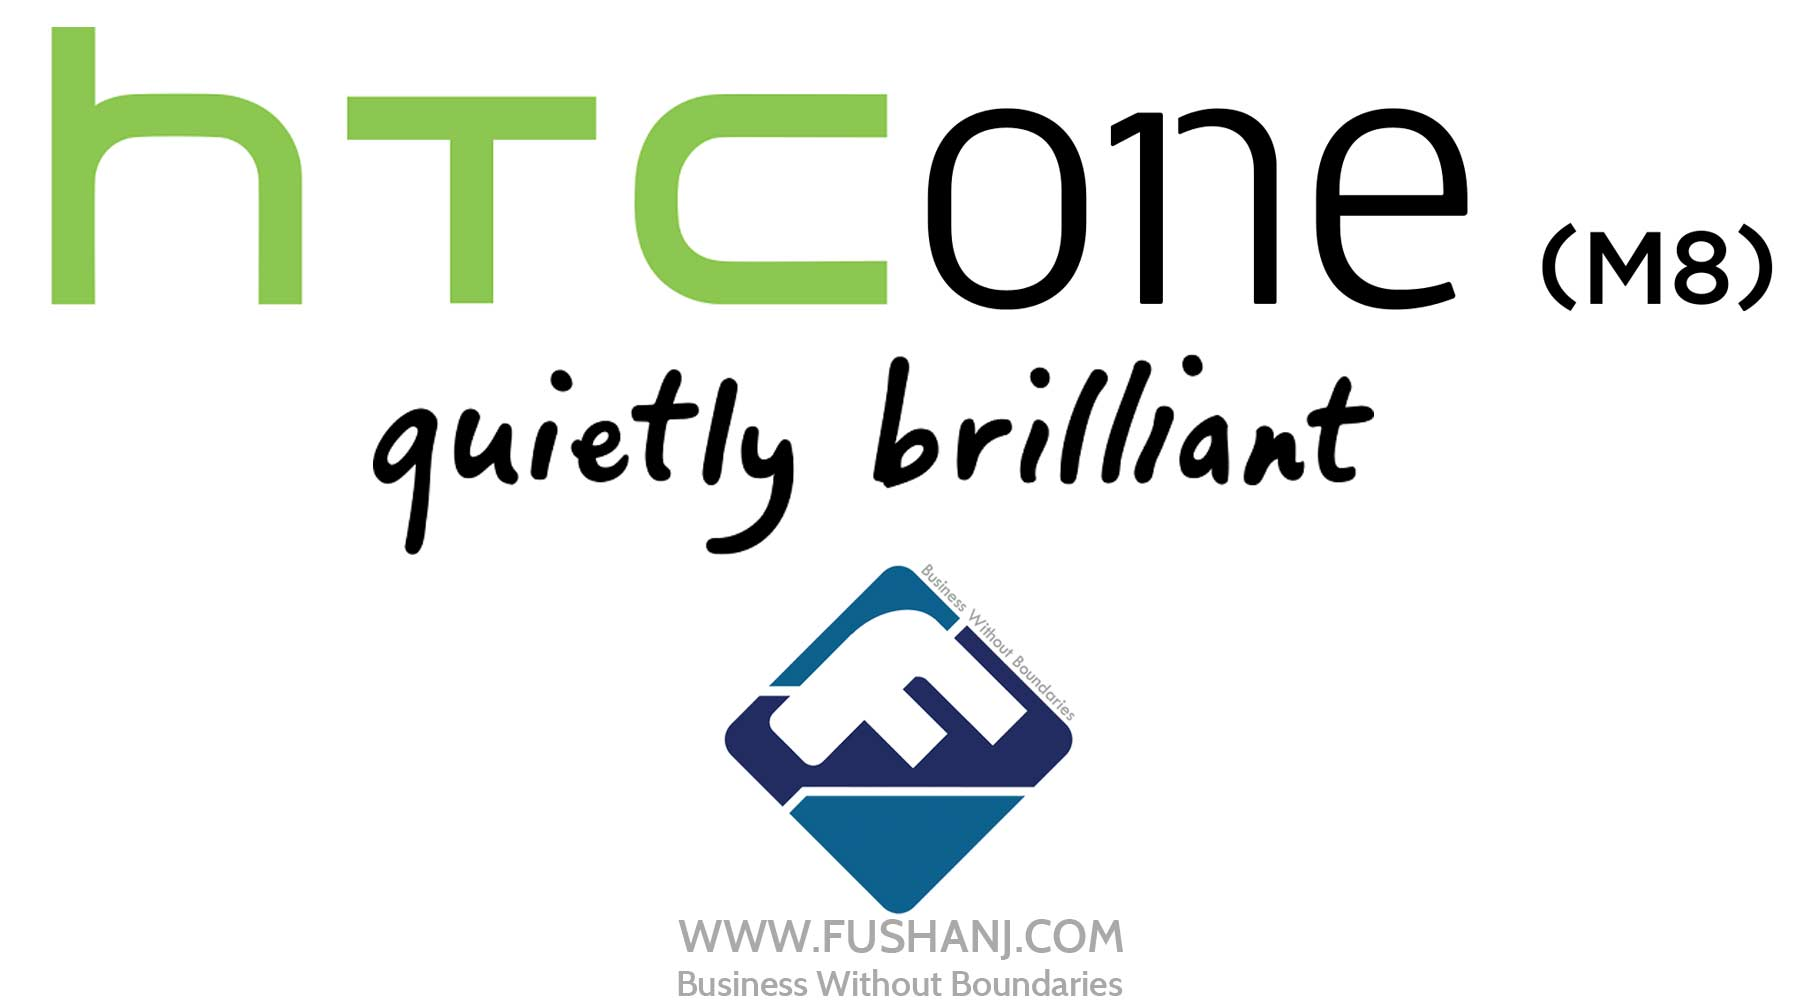 htc-one-m8-logo-best-price-dubai-uae